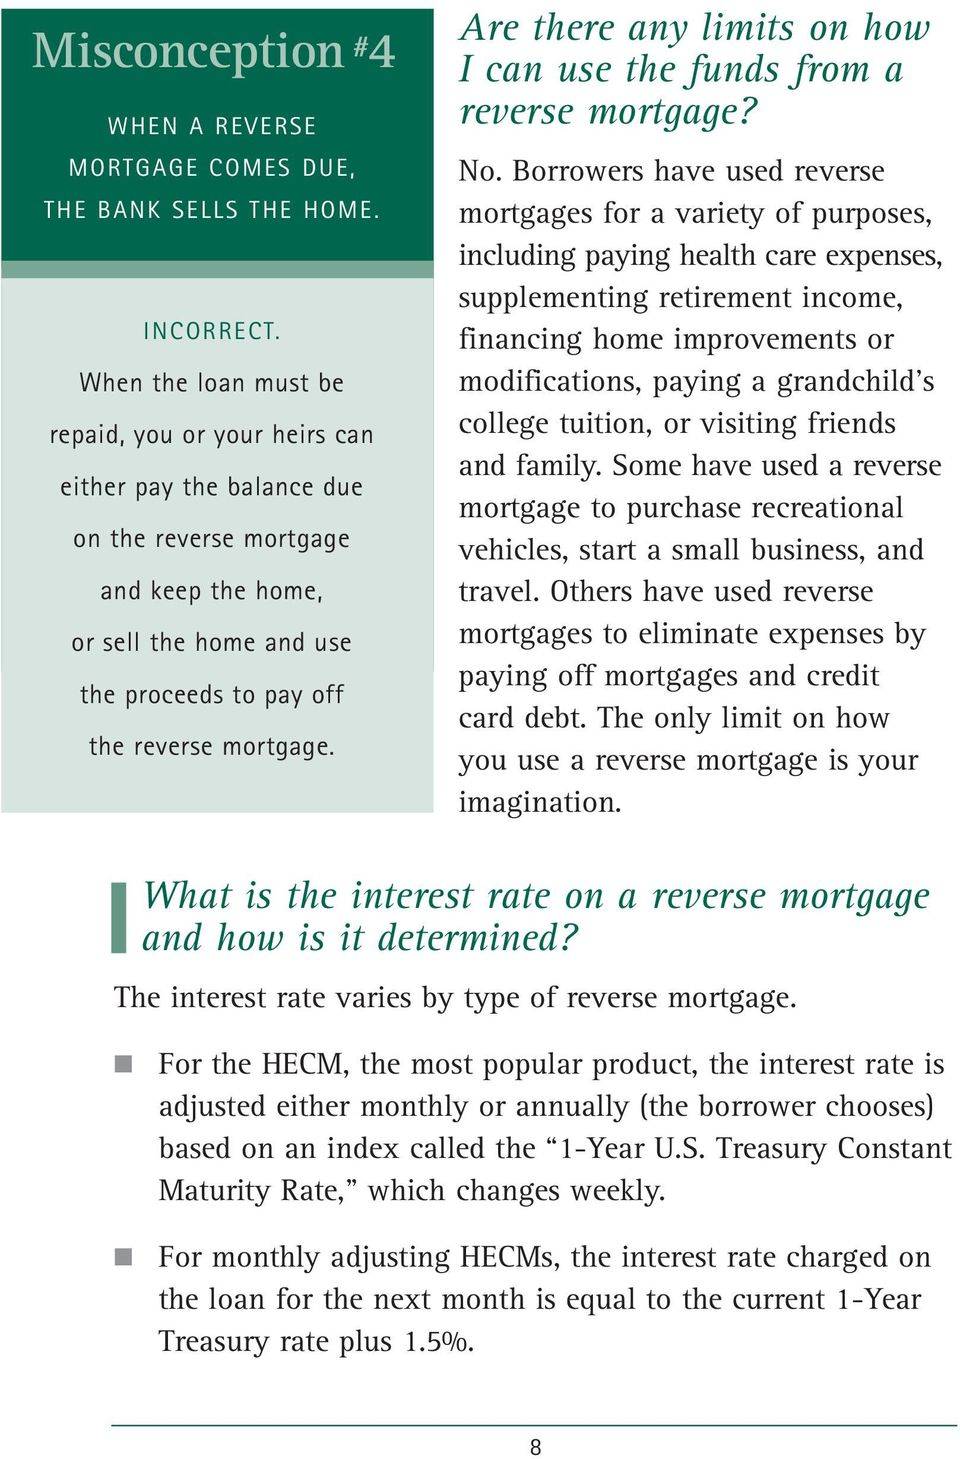 Are there any limits on how I can use the funds from a reverse mortgage? No.